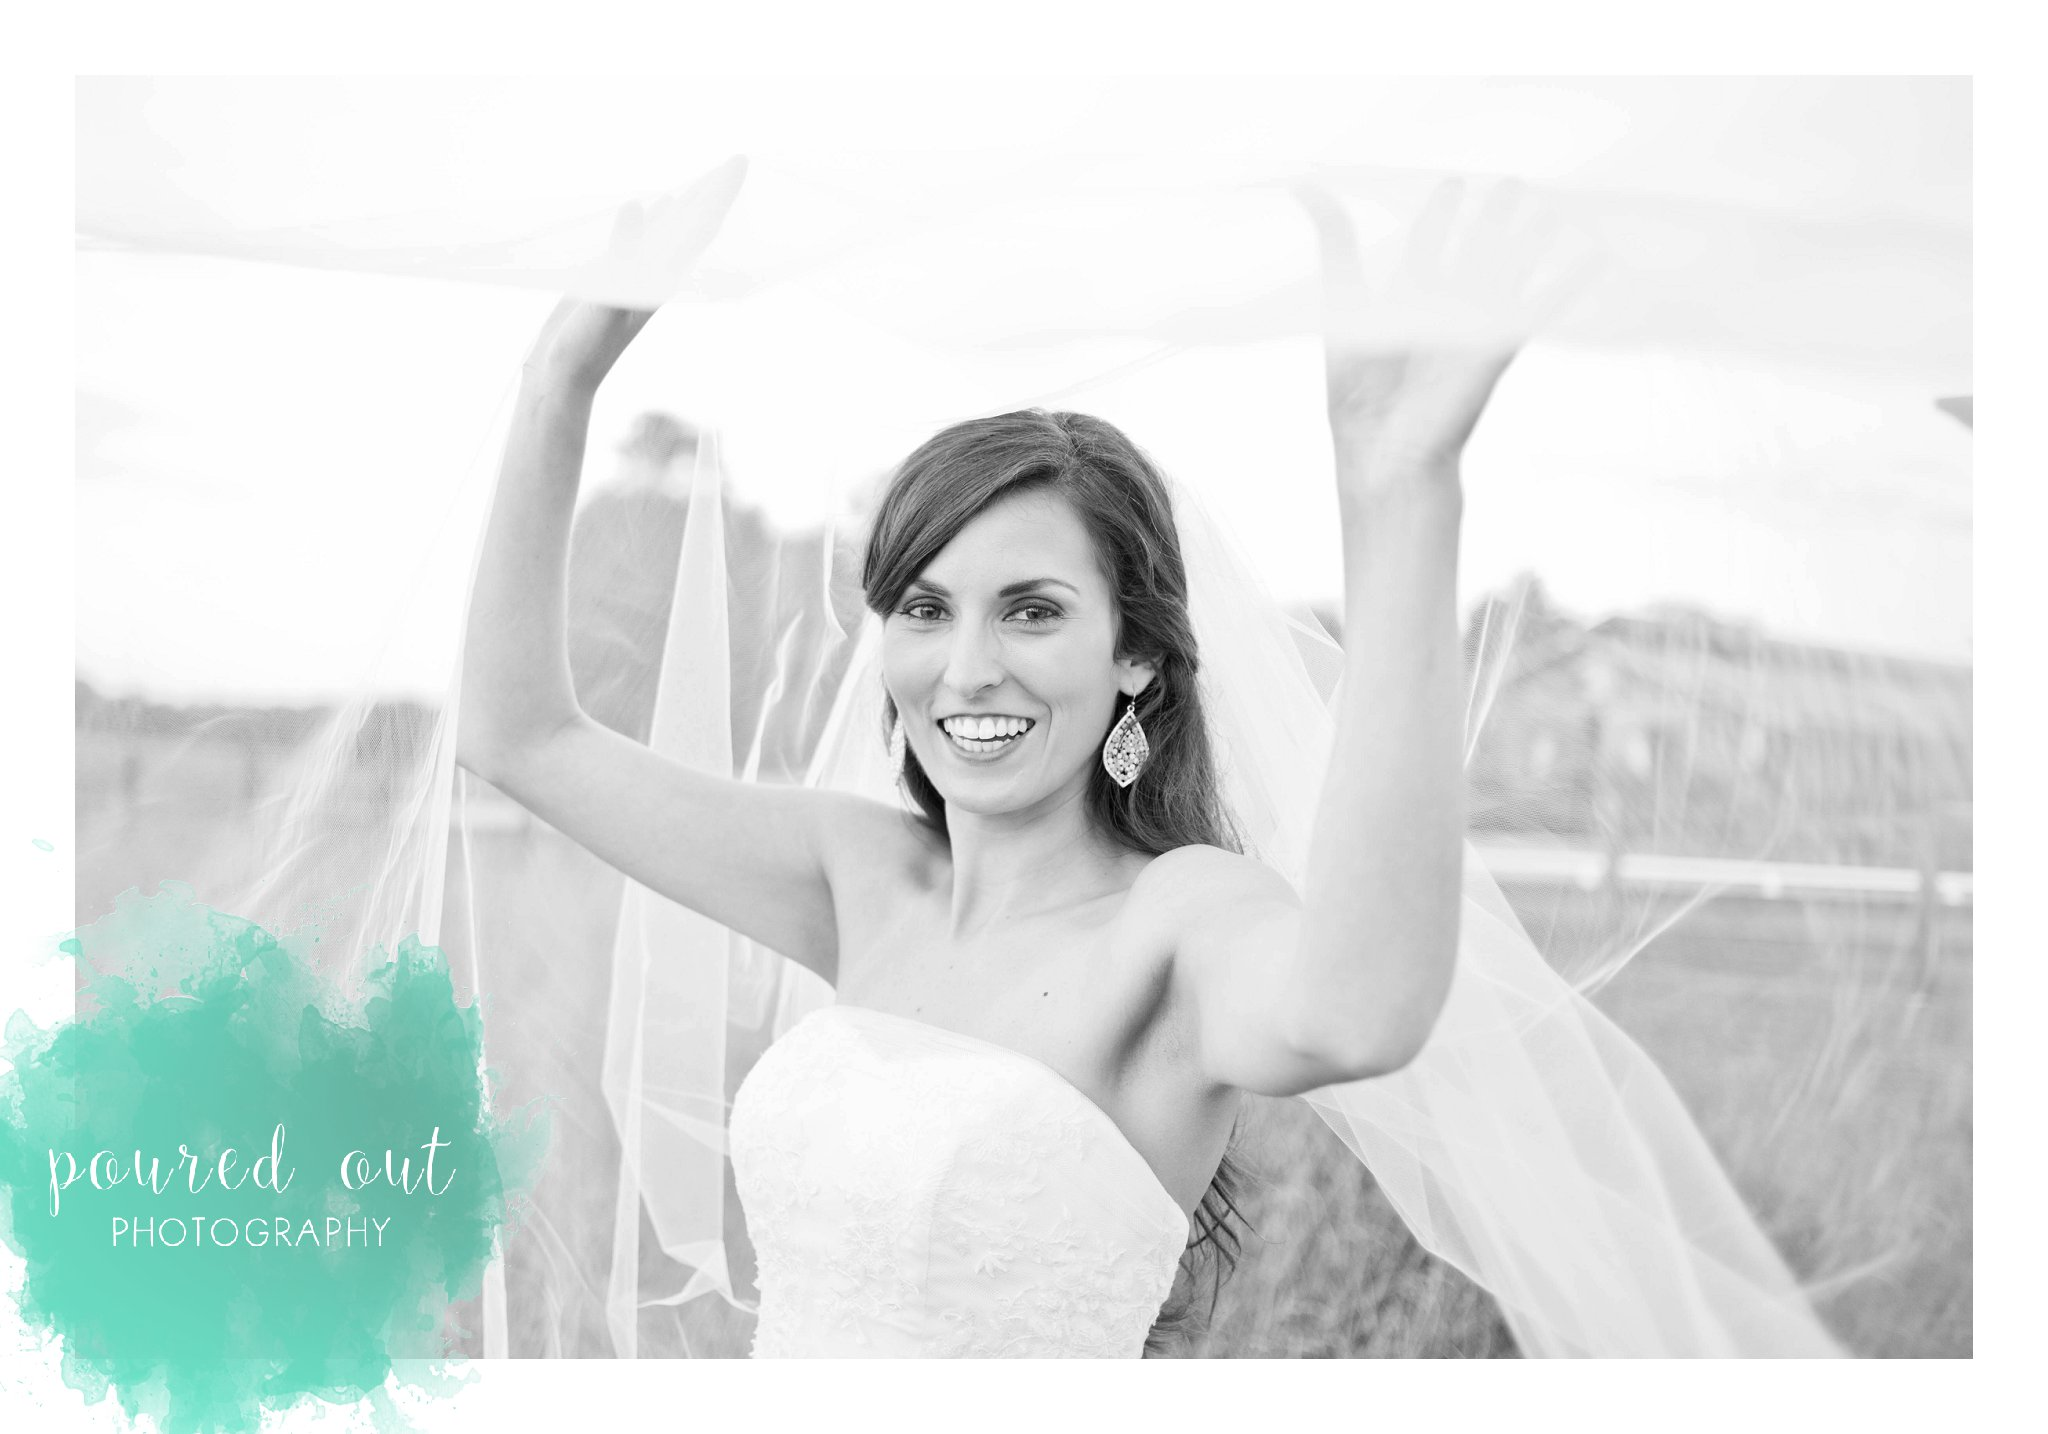 dani_bridal_poured_out_photography-260_WEB.jpg